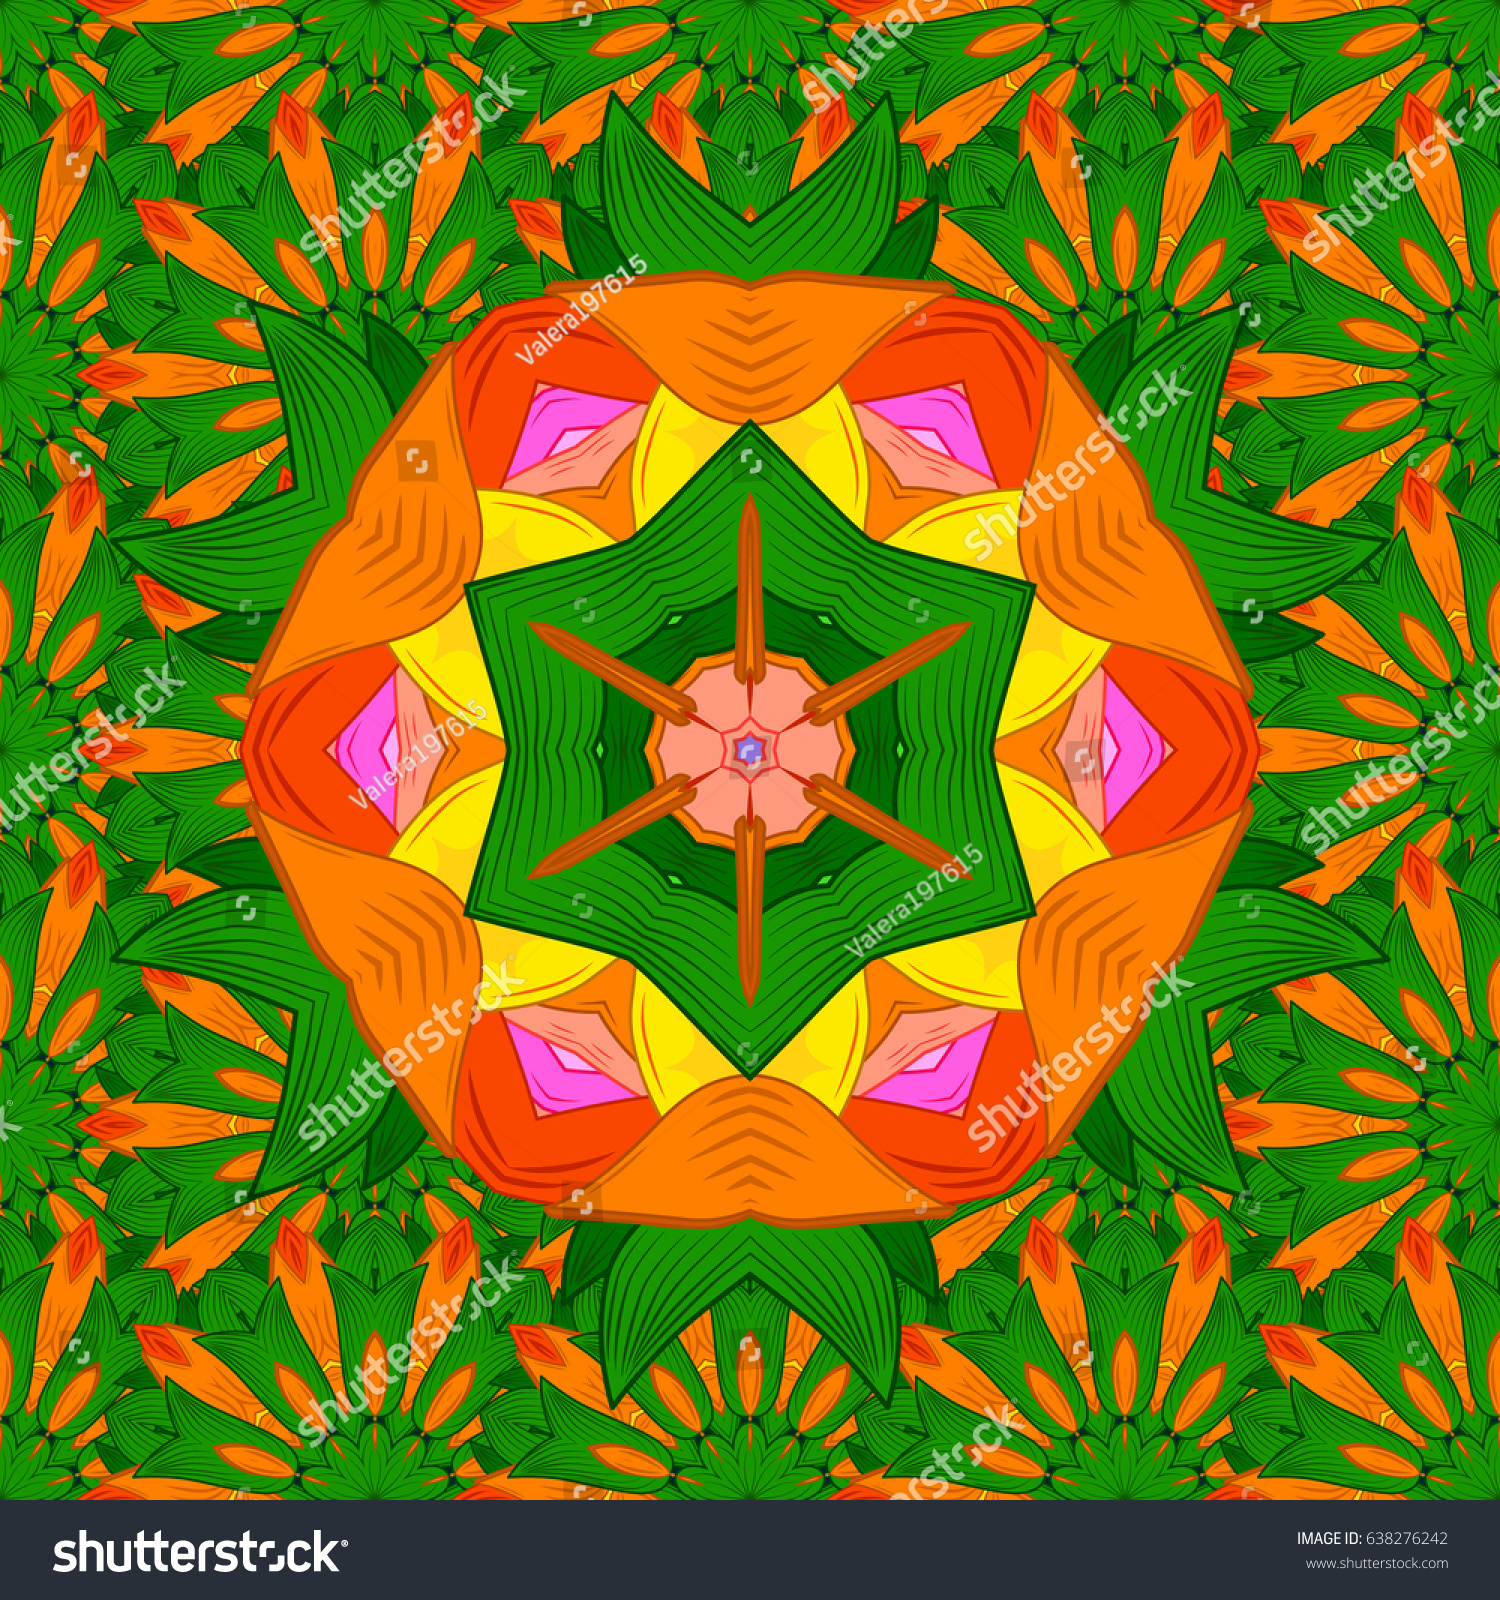 Tiled mandala design, best for print fabric or papper and more ...